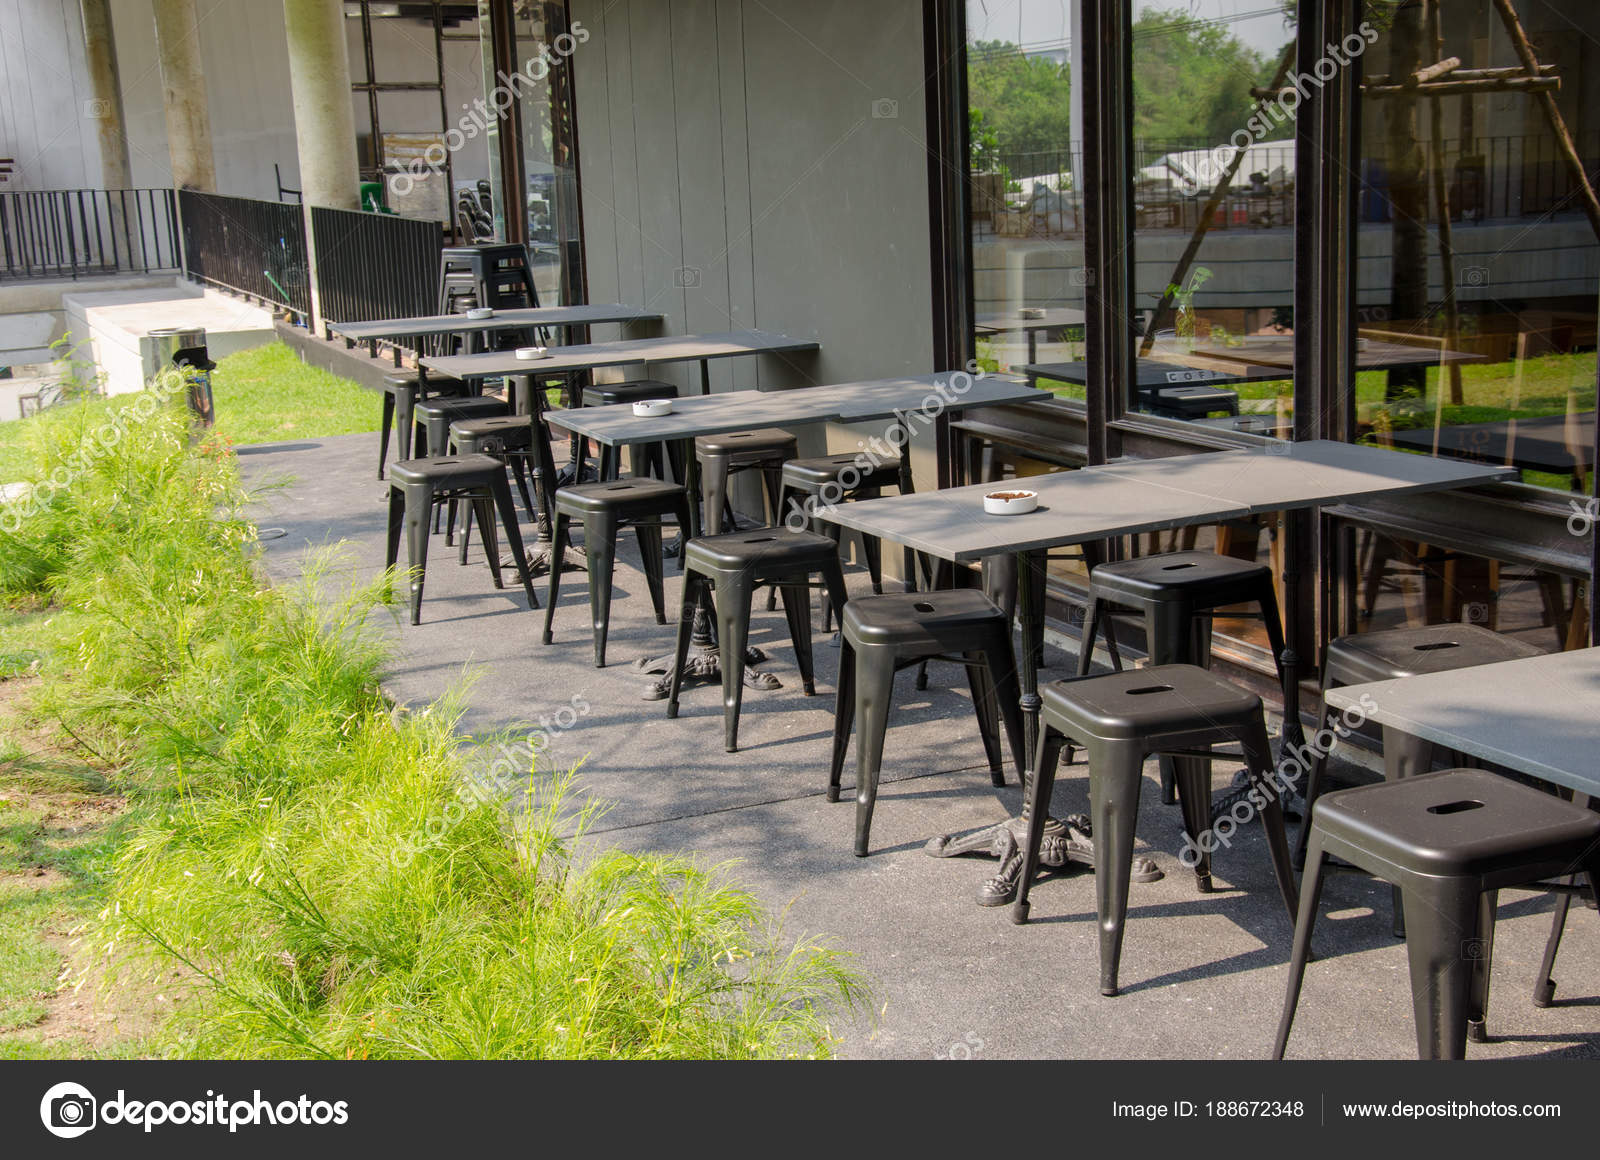 Chairs Outside The Coffee Shop Stock Photo Image By C Aoo8449 188672348